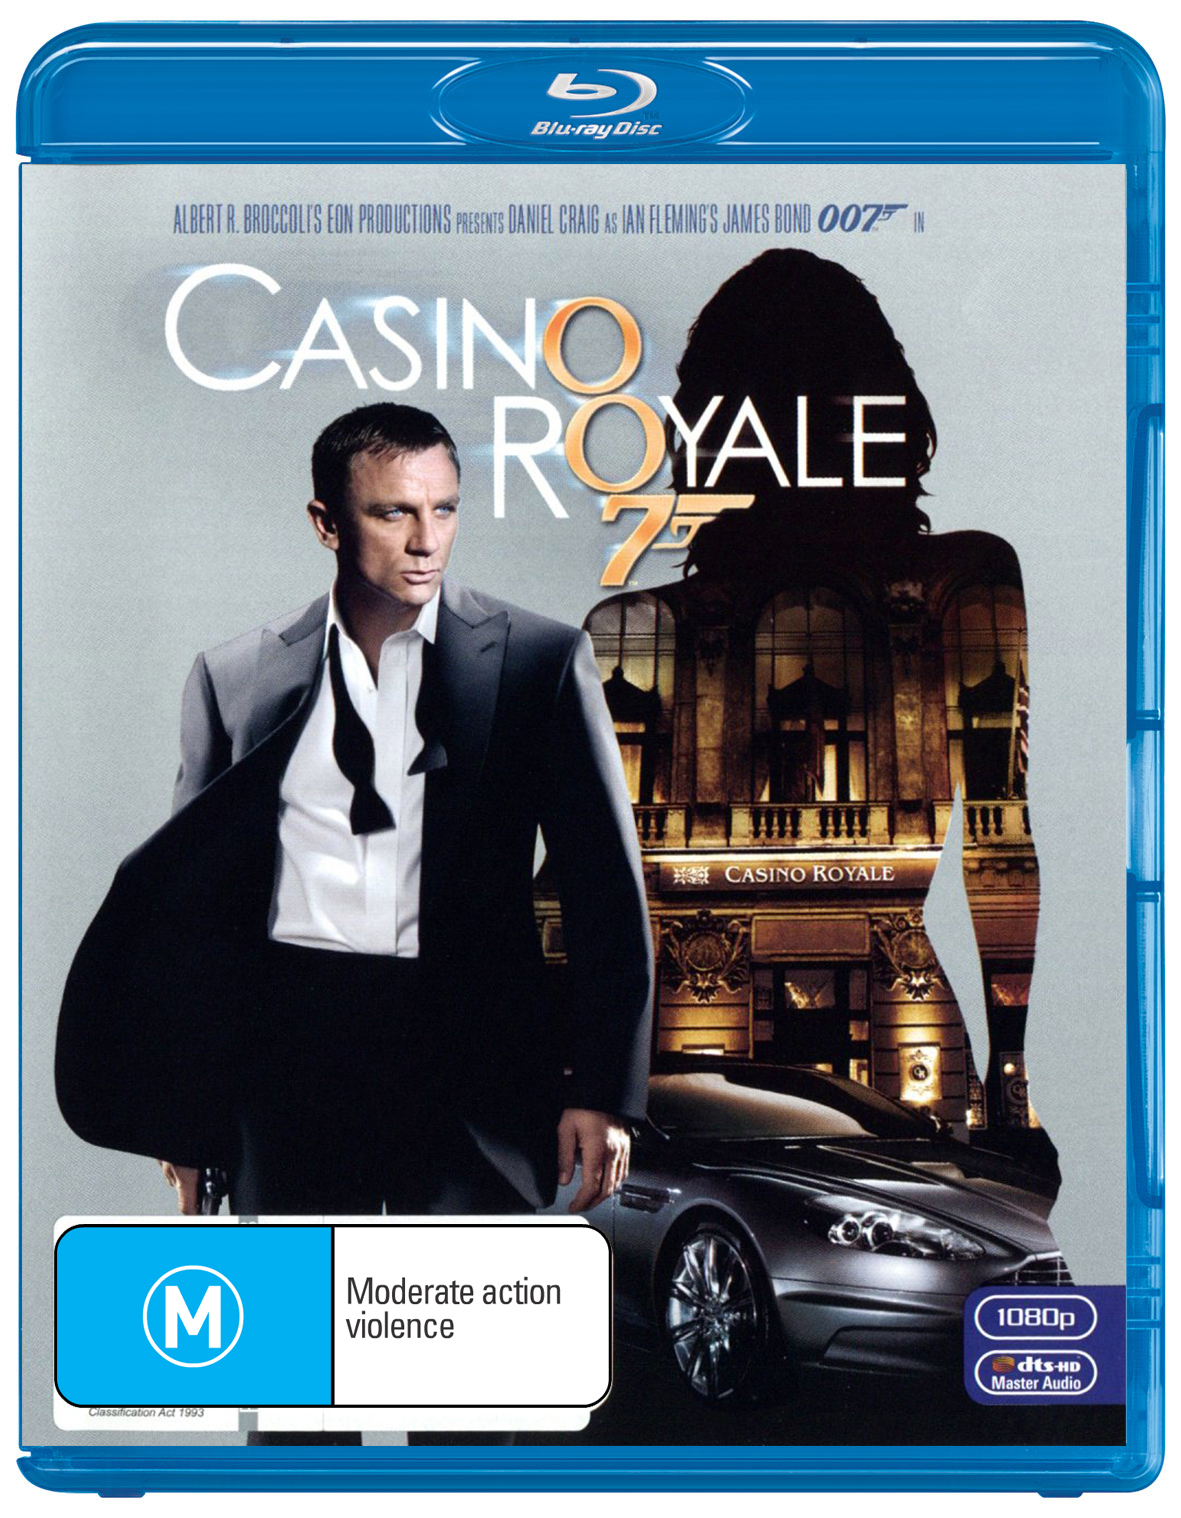 Casino Royale (2012 Version) on Blu-ray image